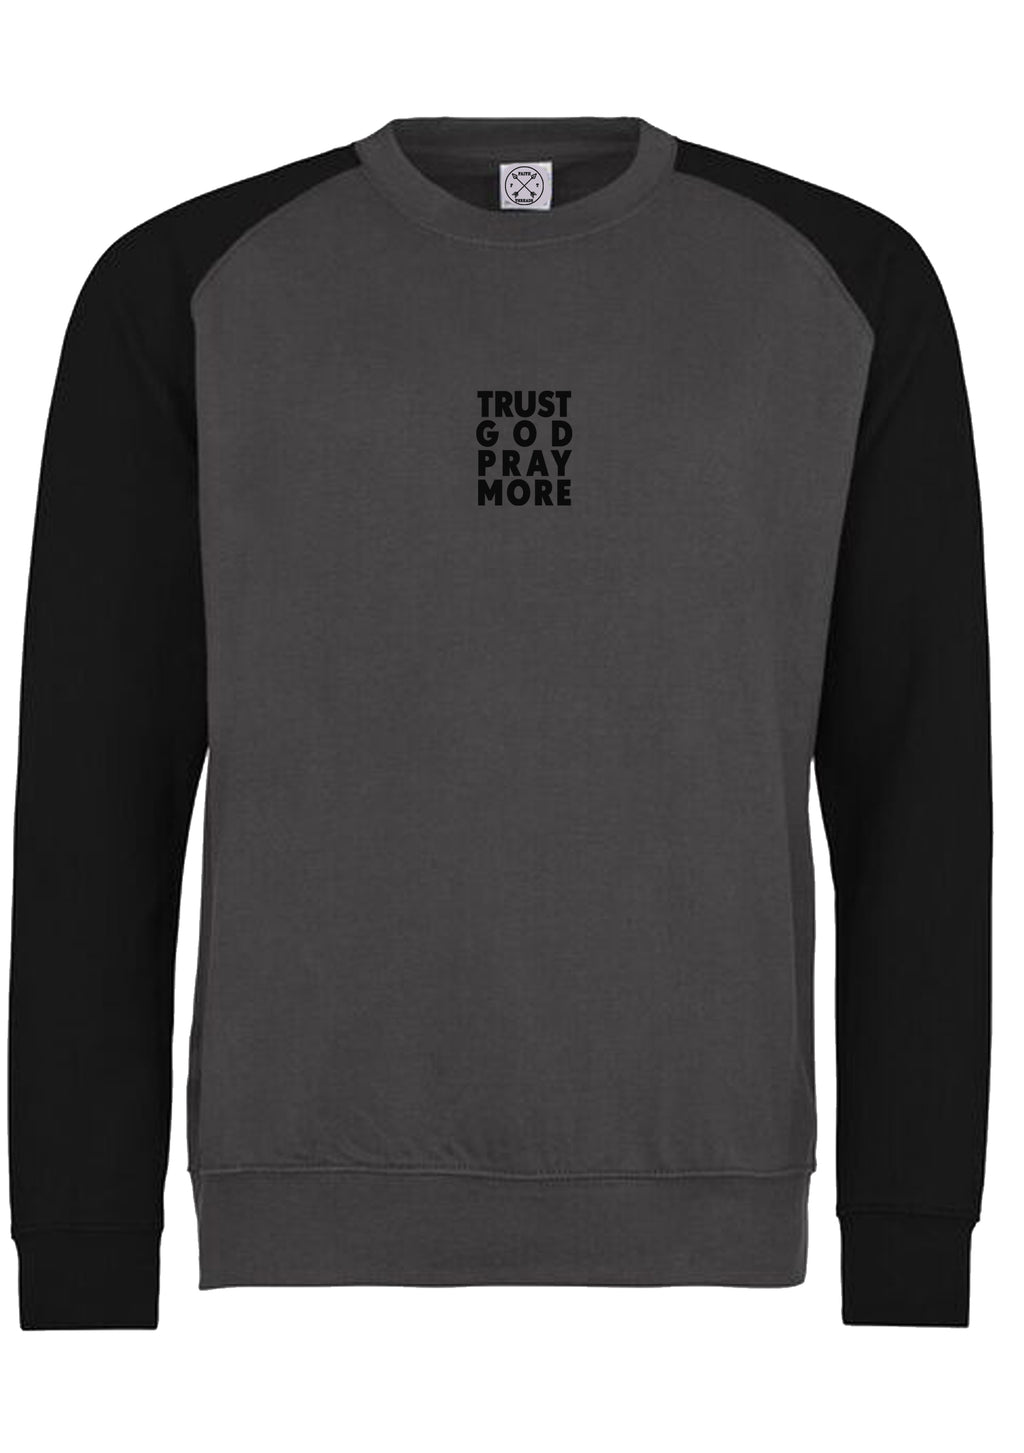 Unisex TRUST GOD Baseball Sweatshirt (Charcoal Black)